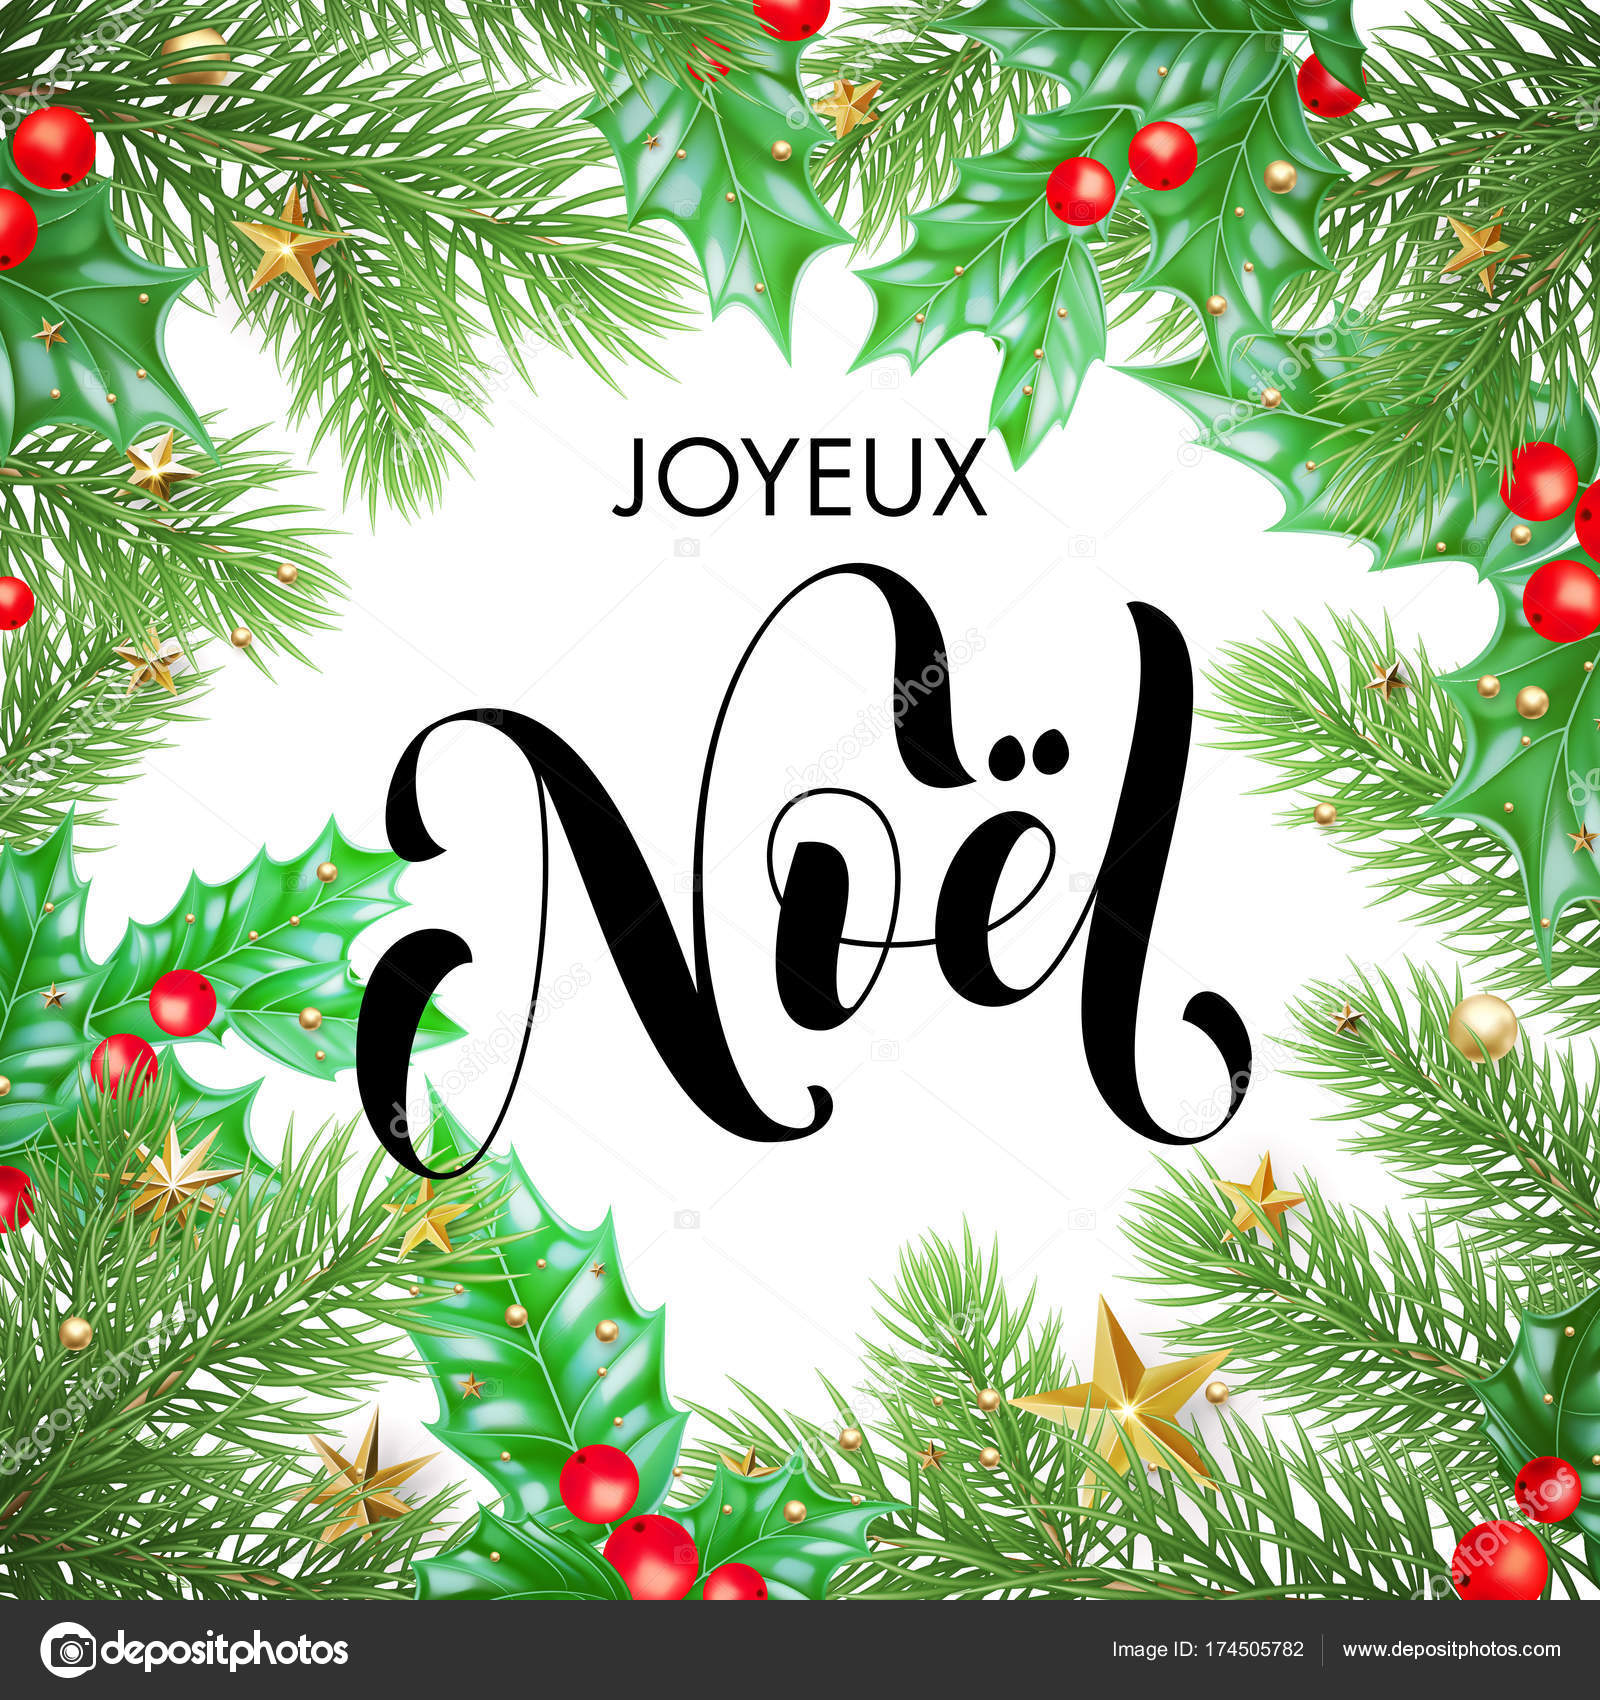 Joyeux noel french merry christmas hand drawn quote calligraphy and joyeux noel french merry christmas hand drawn quote calligraphy and christmas holly wreath for holiday greeting card background template maxwellsz